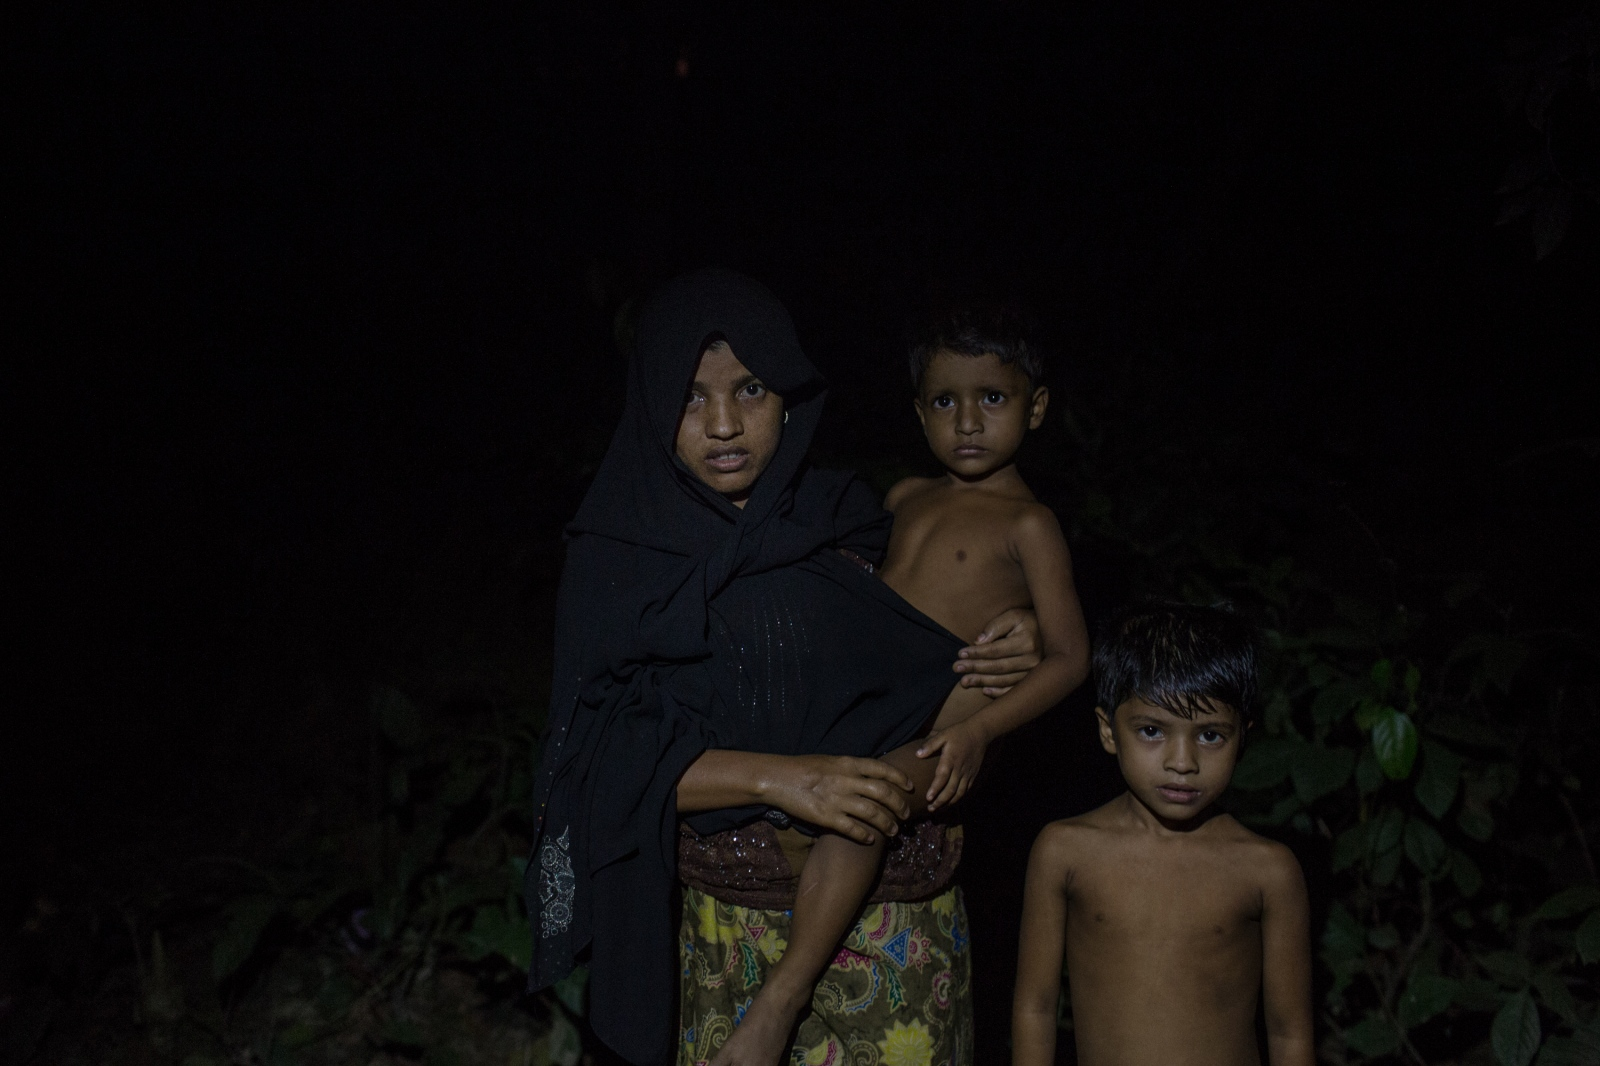 Alkama, 20, waits with her two children by the side of the road for food and cash distributions near the Balukhali refugee camp in Bangladesh on Friday September 22, 2017. When the Burmese Army entered her village, they attempted to flee but were caught. Soldiers then killed her husband before releasing Alkama and her children.